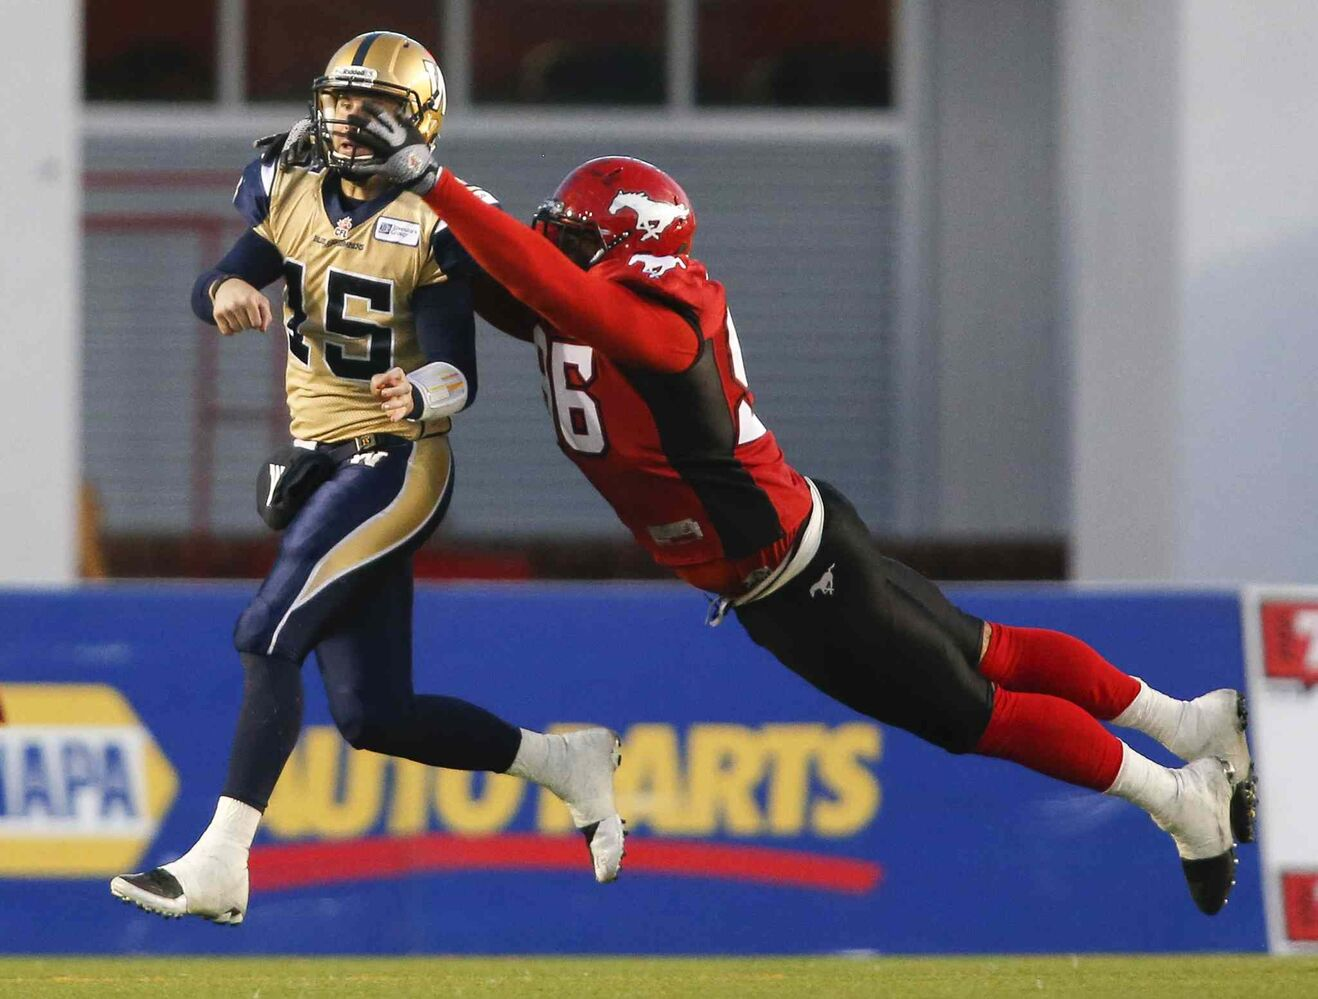 Winnipeg Blue Bombers quarterback Max Hall is tackled by Calgary Stampeders' Demonte Bolden during the second half.